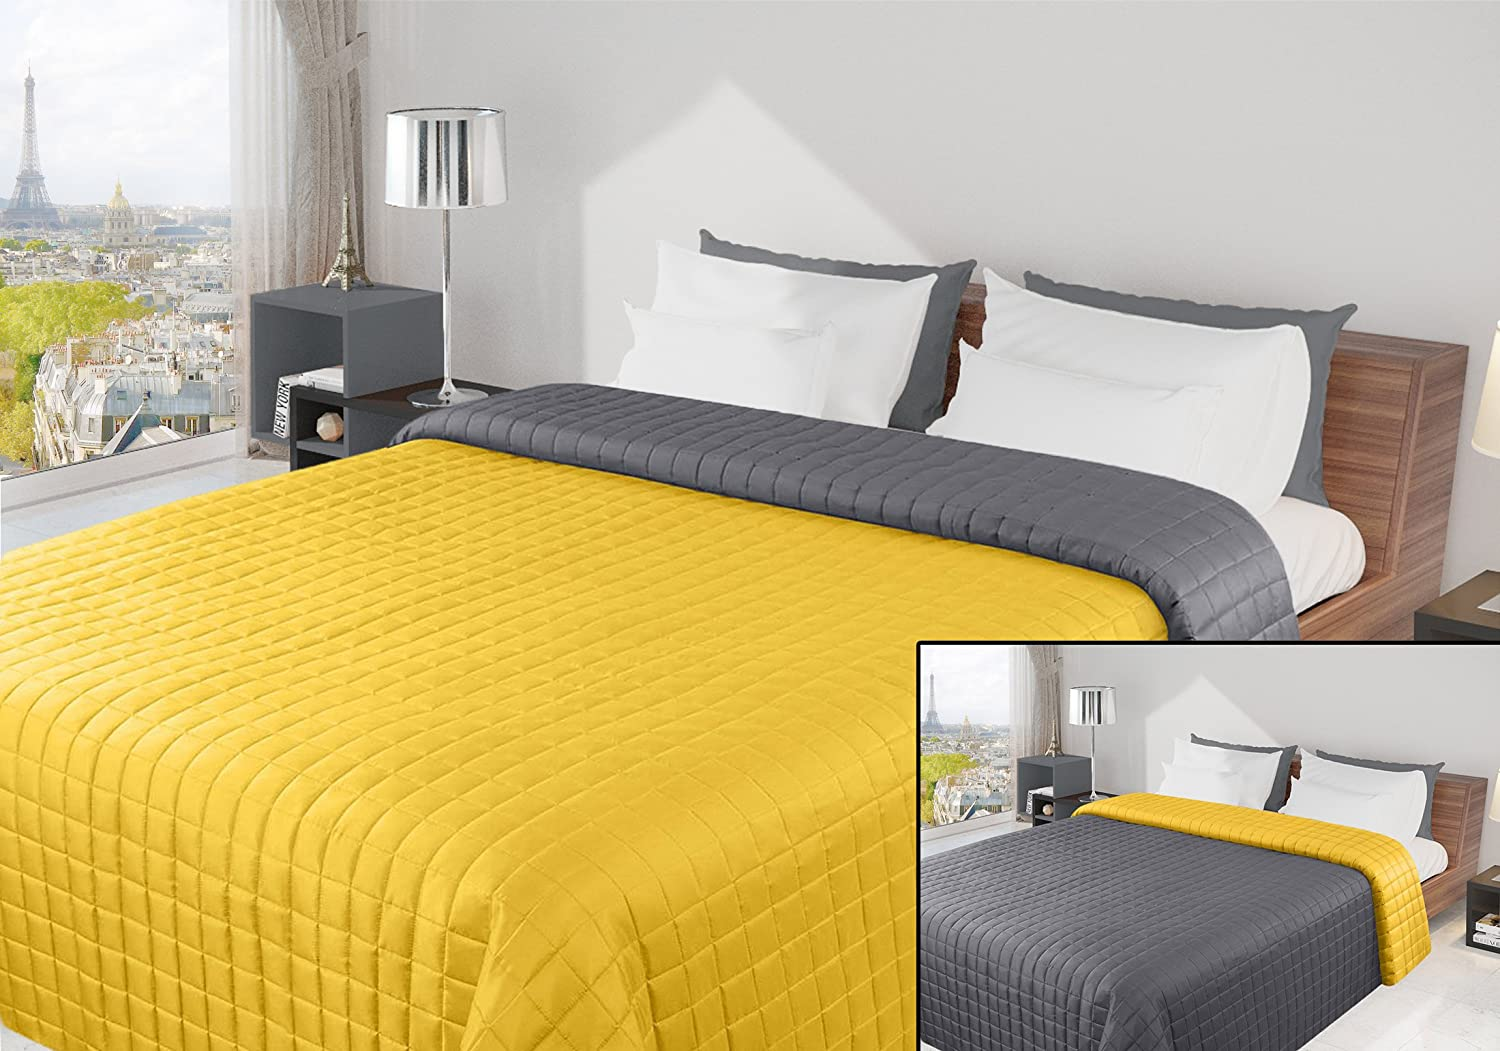 hay tagesdecke excellent kalason with hay tagesdecke colour block cushion and bedspread from. Black Bedroom Furniture Sets. Home Design Ideas